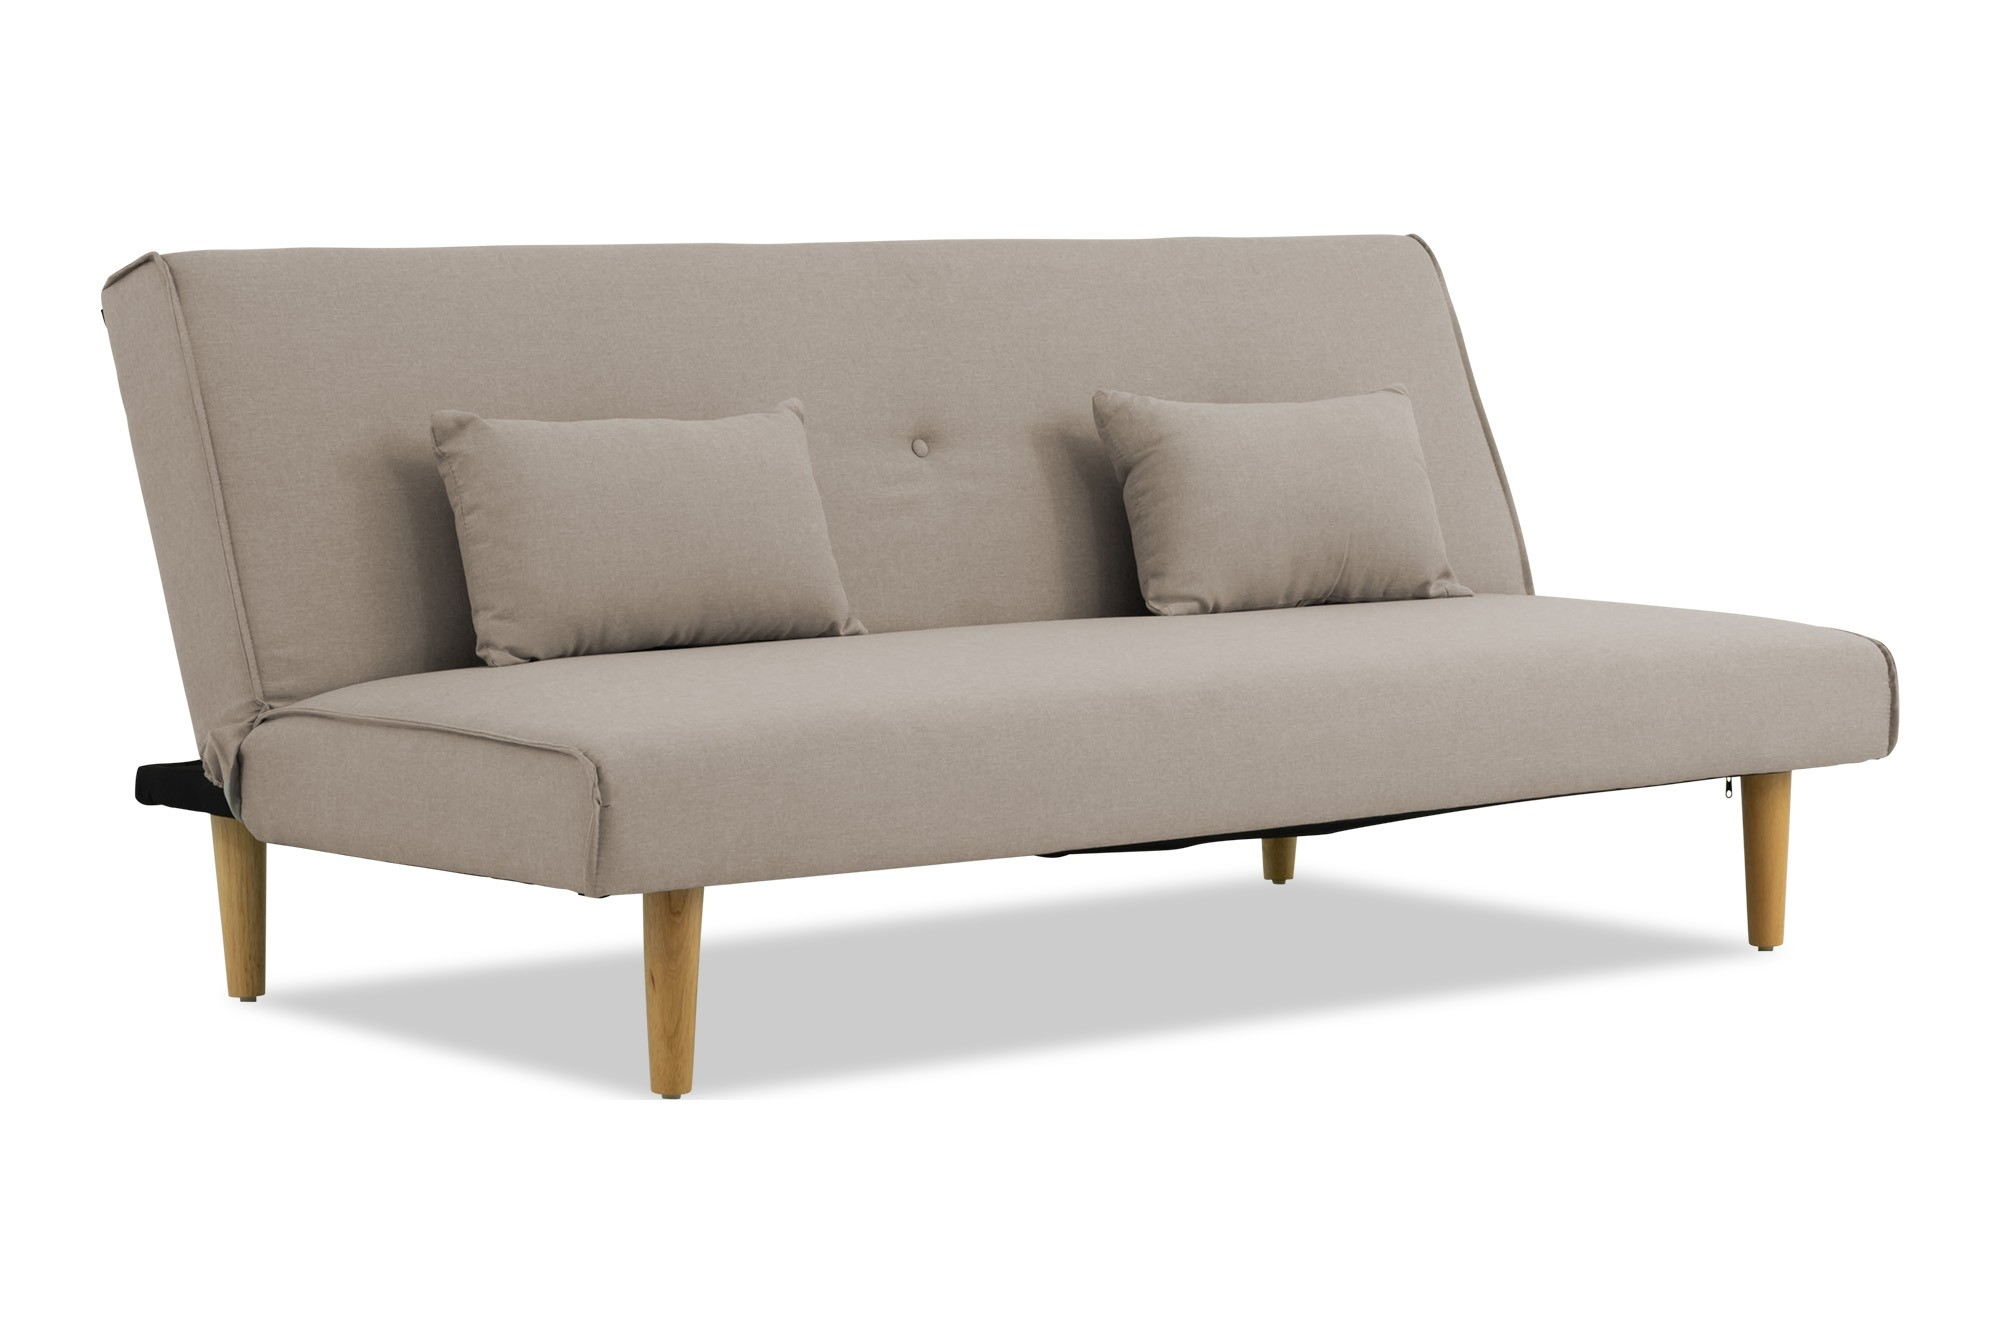 Lacel Sofa Bed With Cushions Taupe Grey